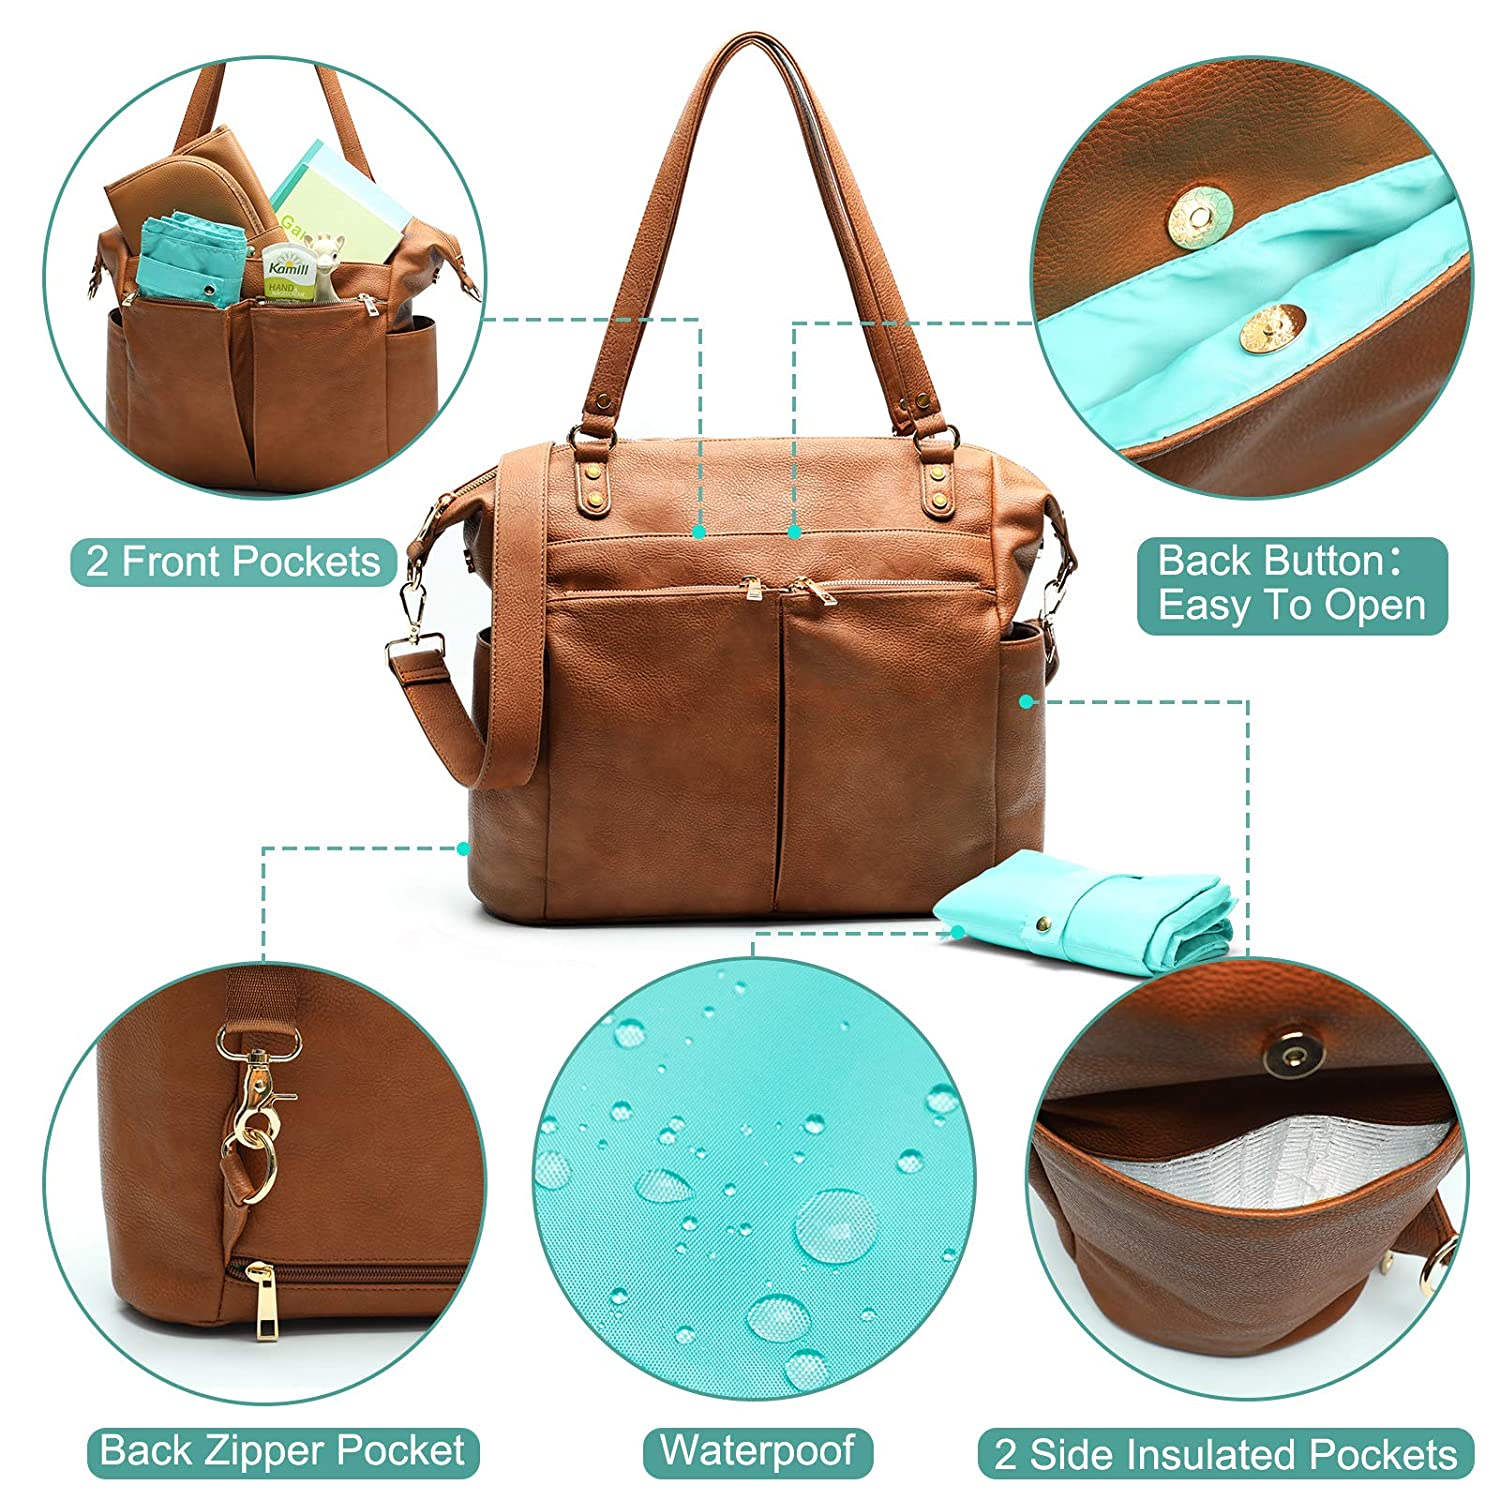 Changing Pad Shoulder Straps Diaper Bag Tote Mominside Leather Diaper Bag Backpack for Mom and Dad Large Travel Diaper Tote Baby Bag for Boys and Girls with Insulated Pocket Brown